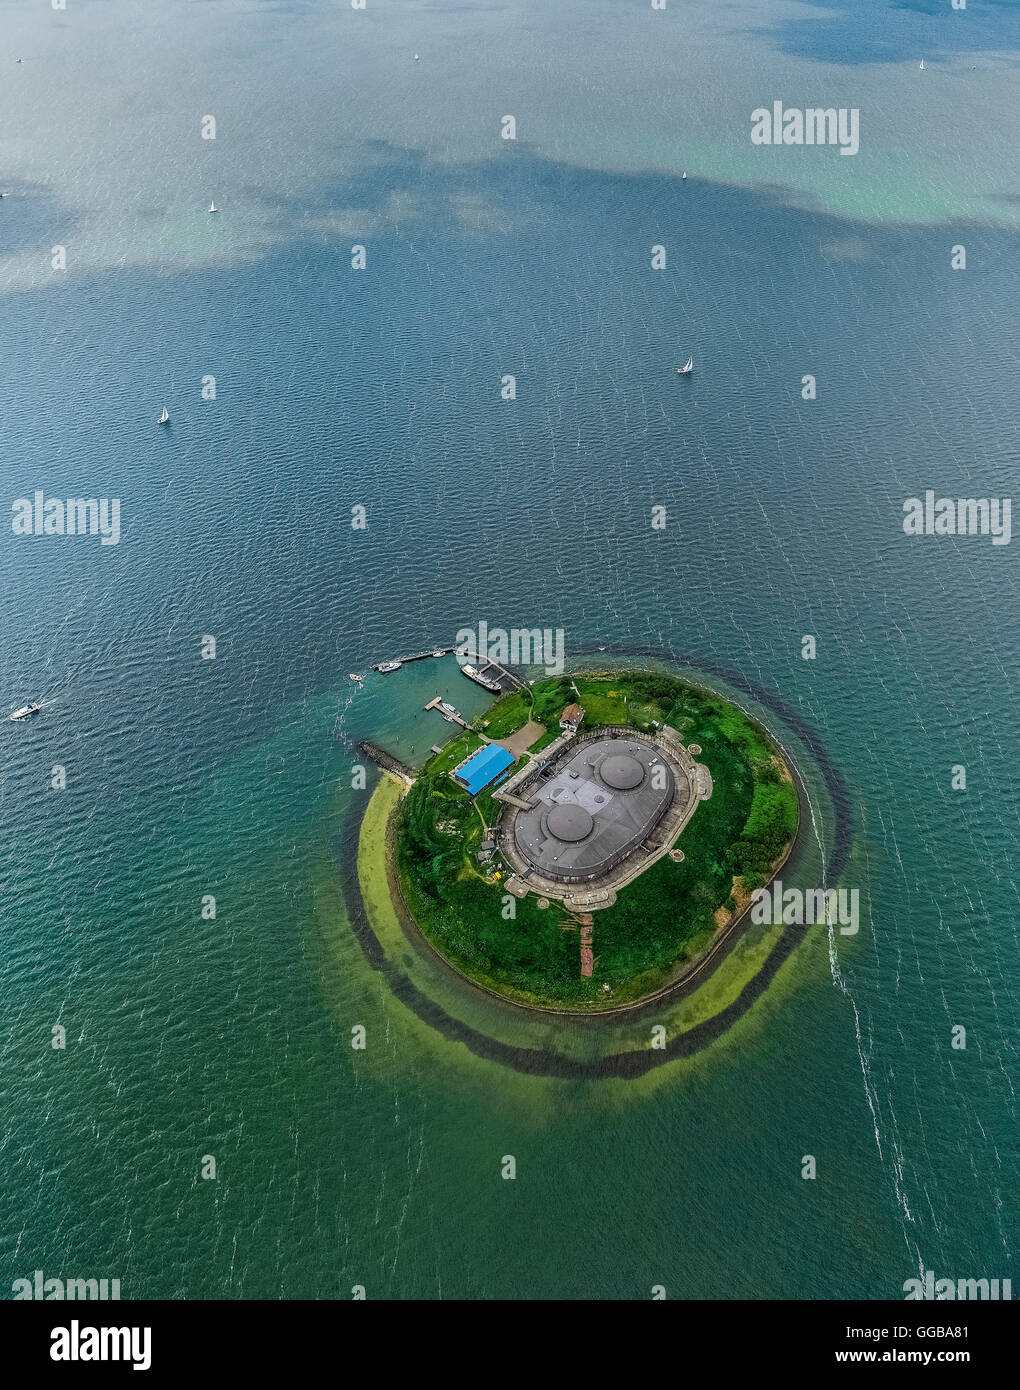 Aerial view, Fort Eiland Pampus, Fort island Pampus, Pampus is an artificial island in the IJmeer, VOR flight navigation - Stock Image